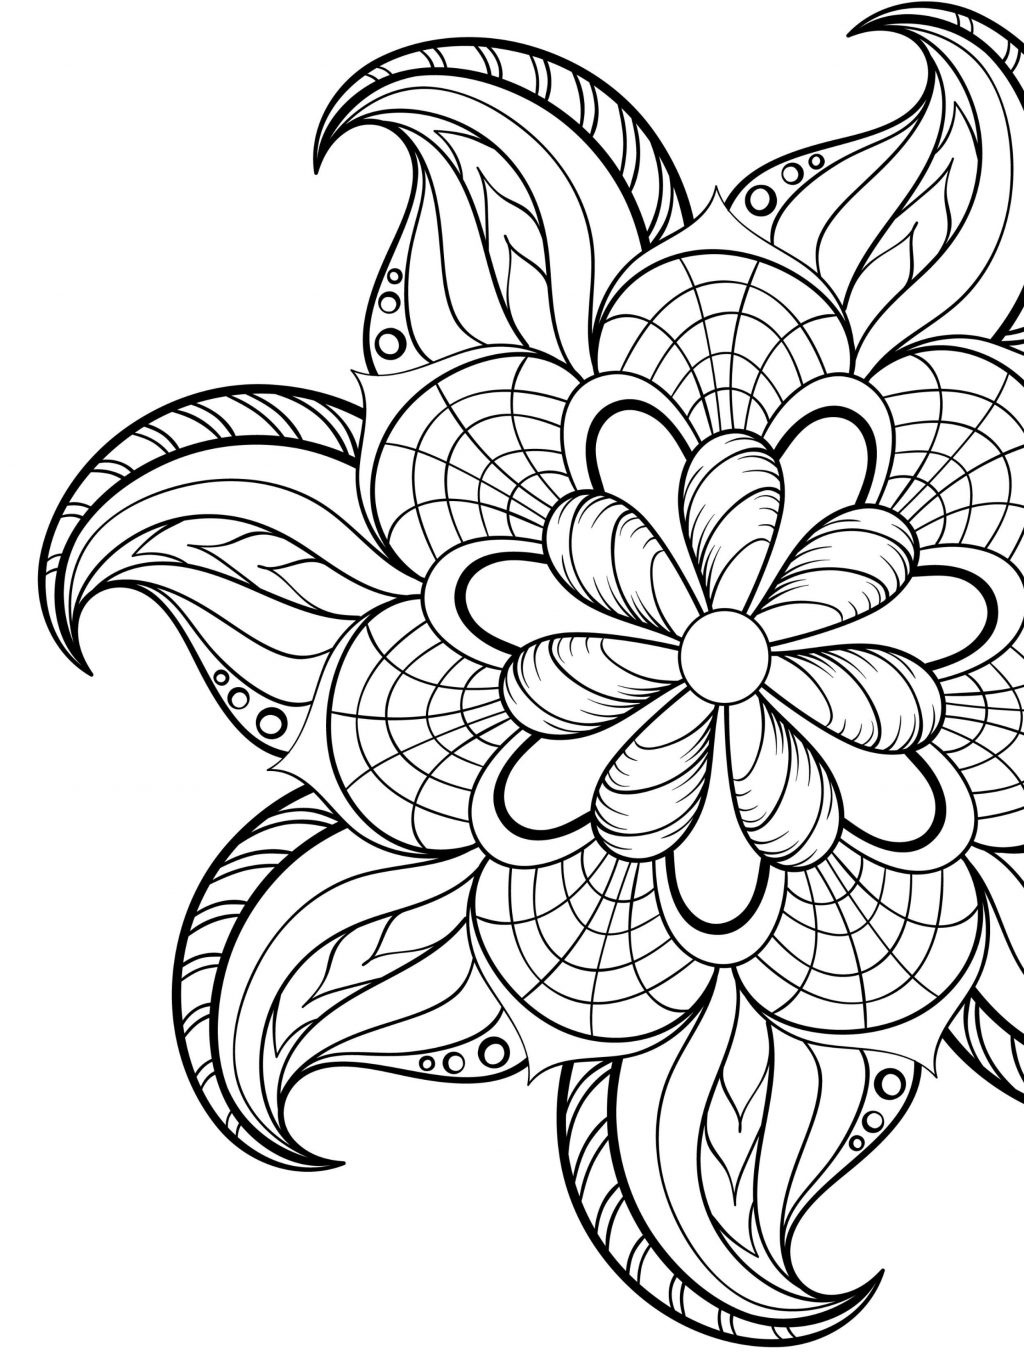 Coloring Page ~ Astonishing Free Printable Colorings Gorgeous Adult - Free Printable Coloring Books For Adults